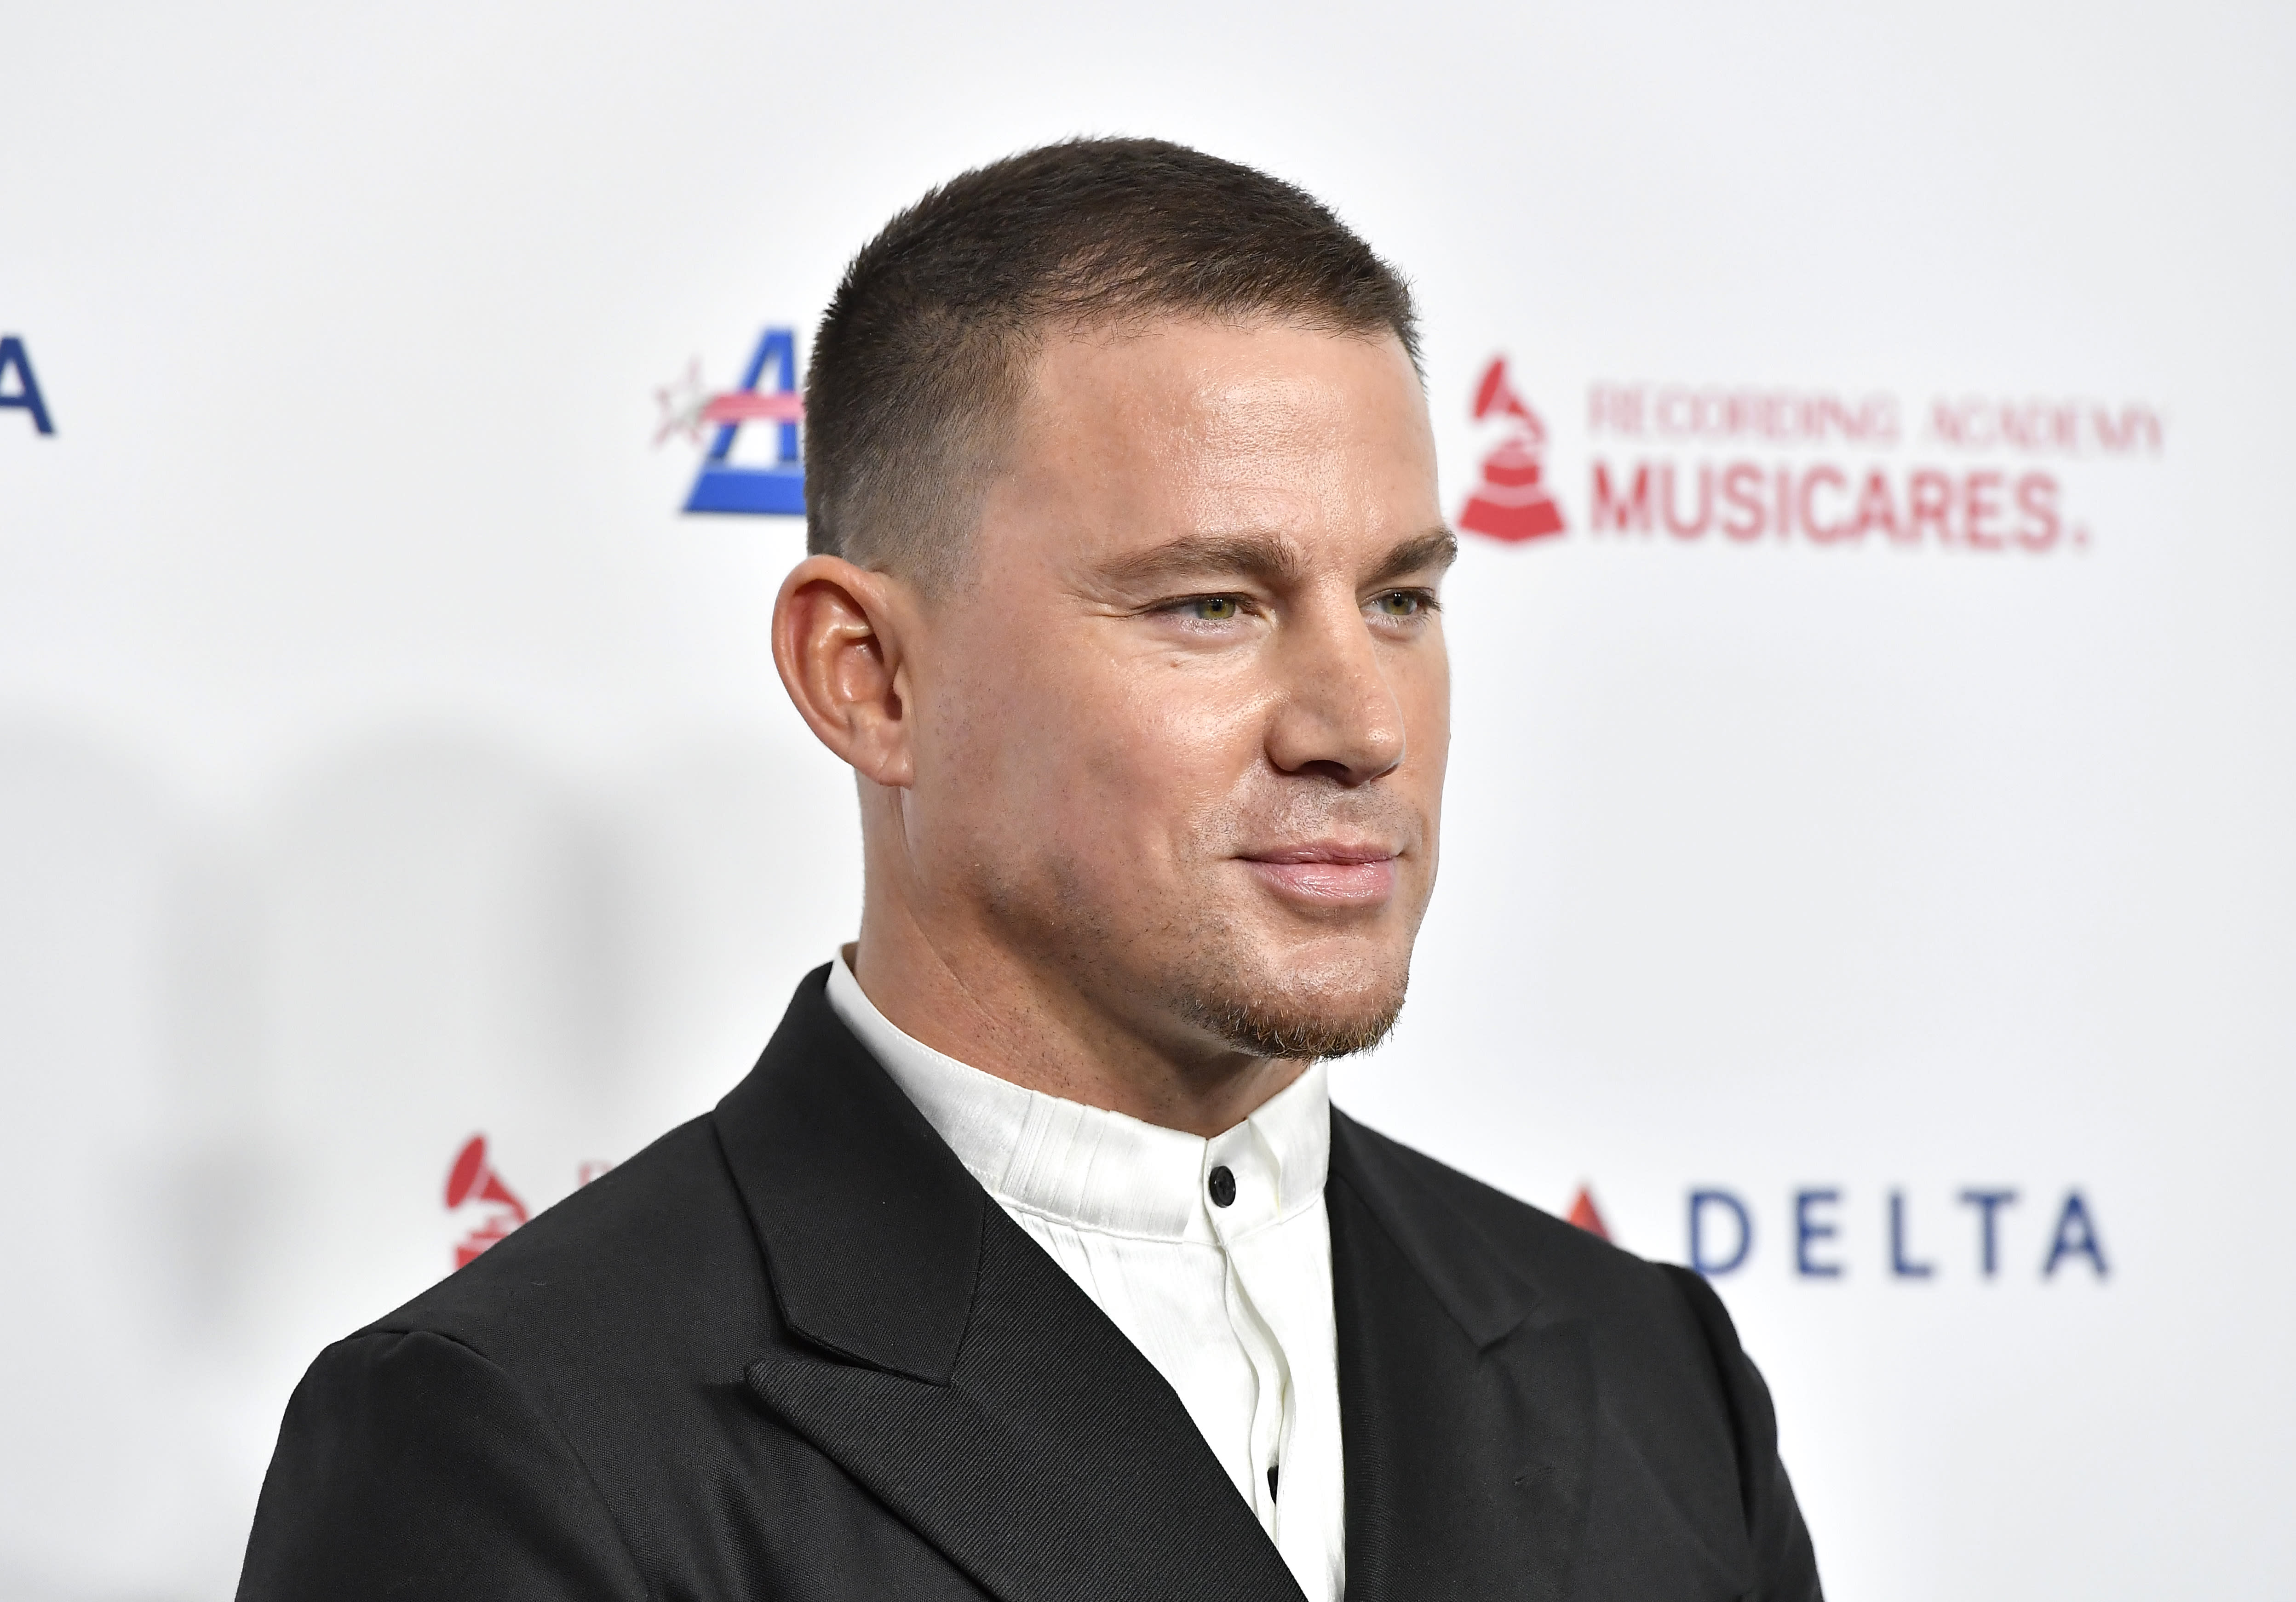 Channing Tatum is producing a young adult musical inspired by Lady Macbeth